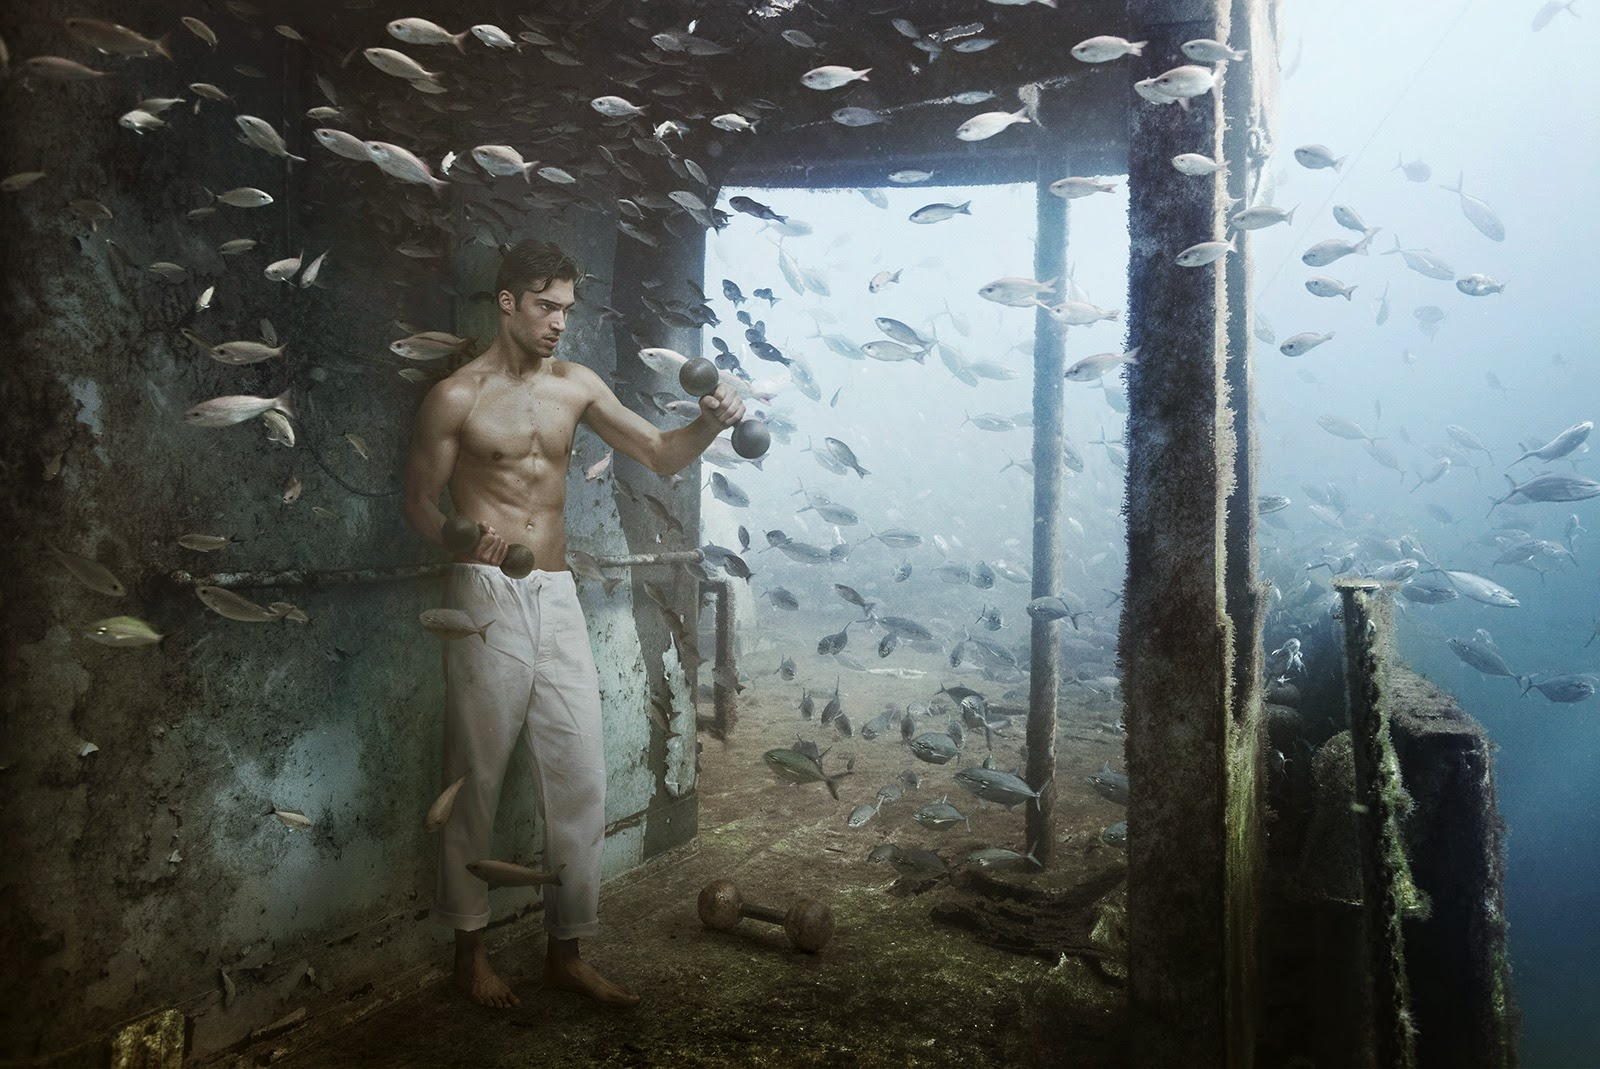 14-Andreas-Franke-Surreal-Artificial-Reef-Photography-www-designstack-co